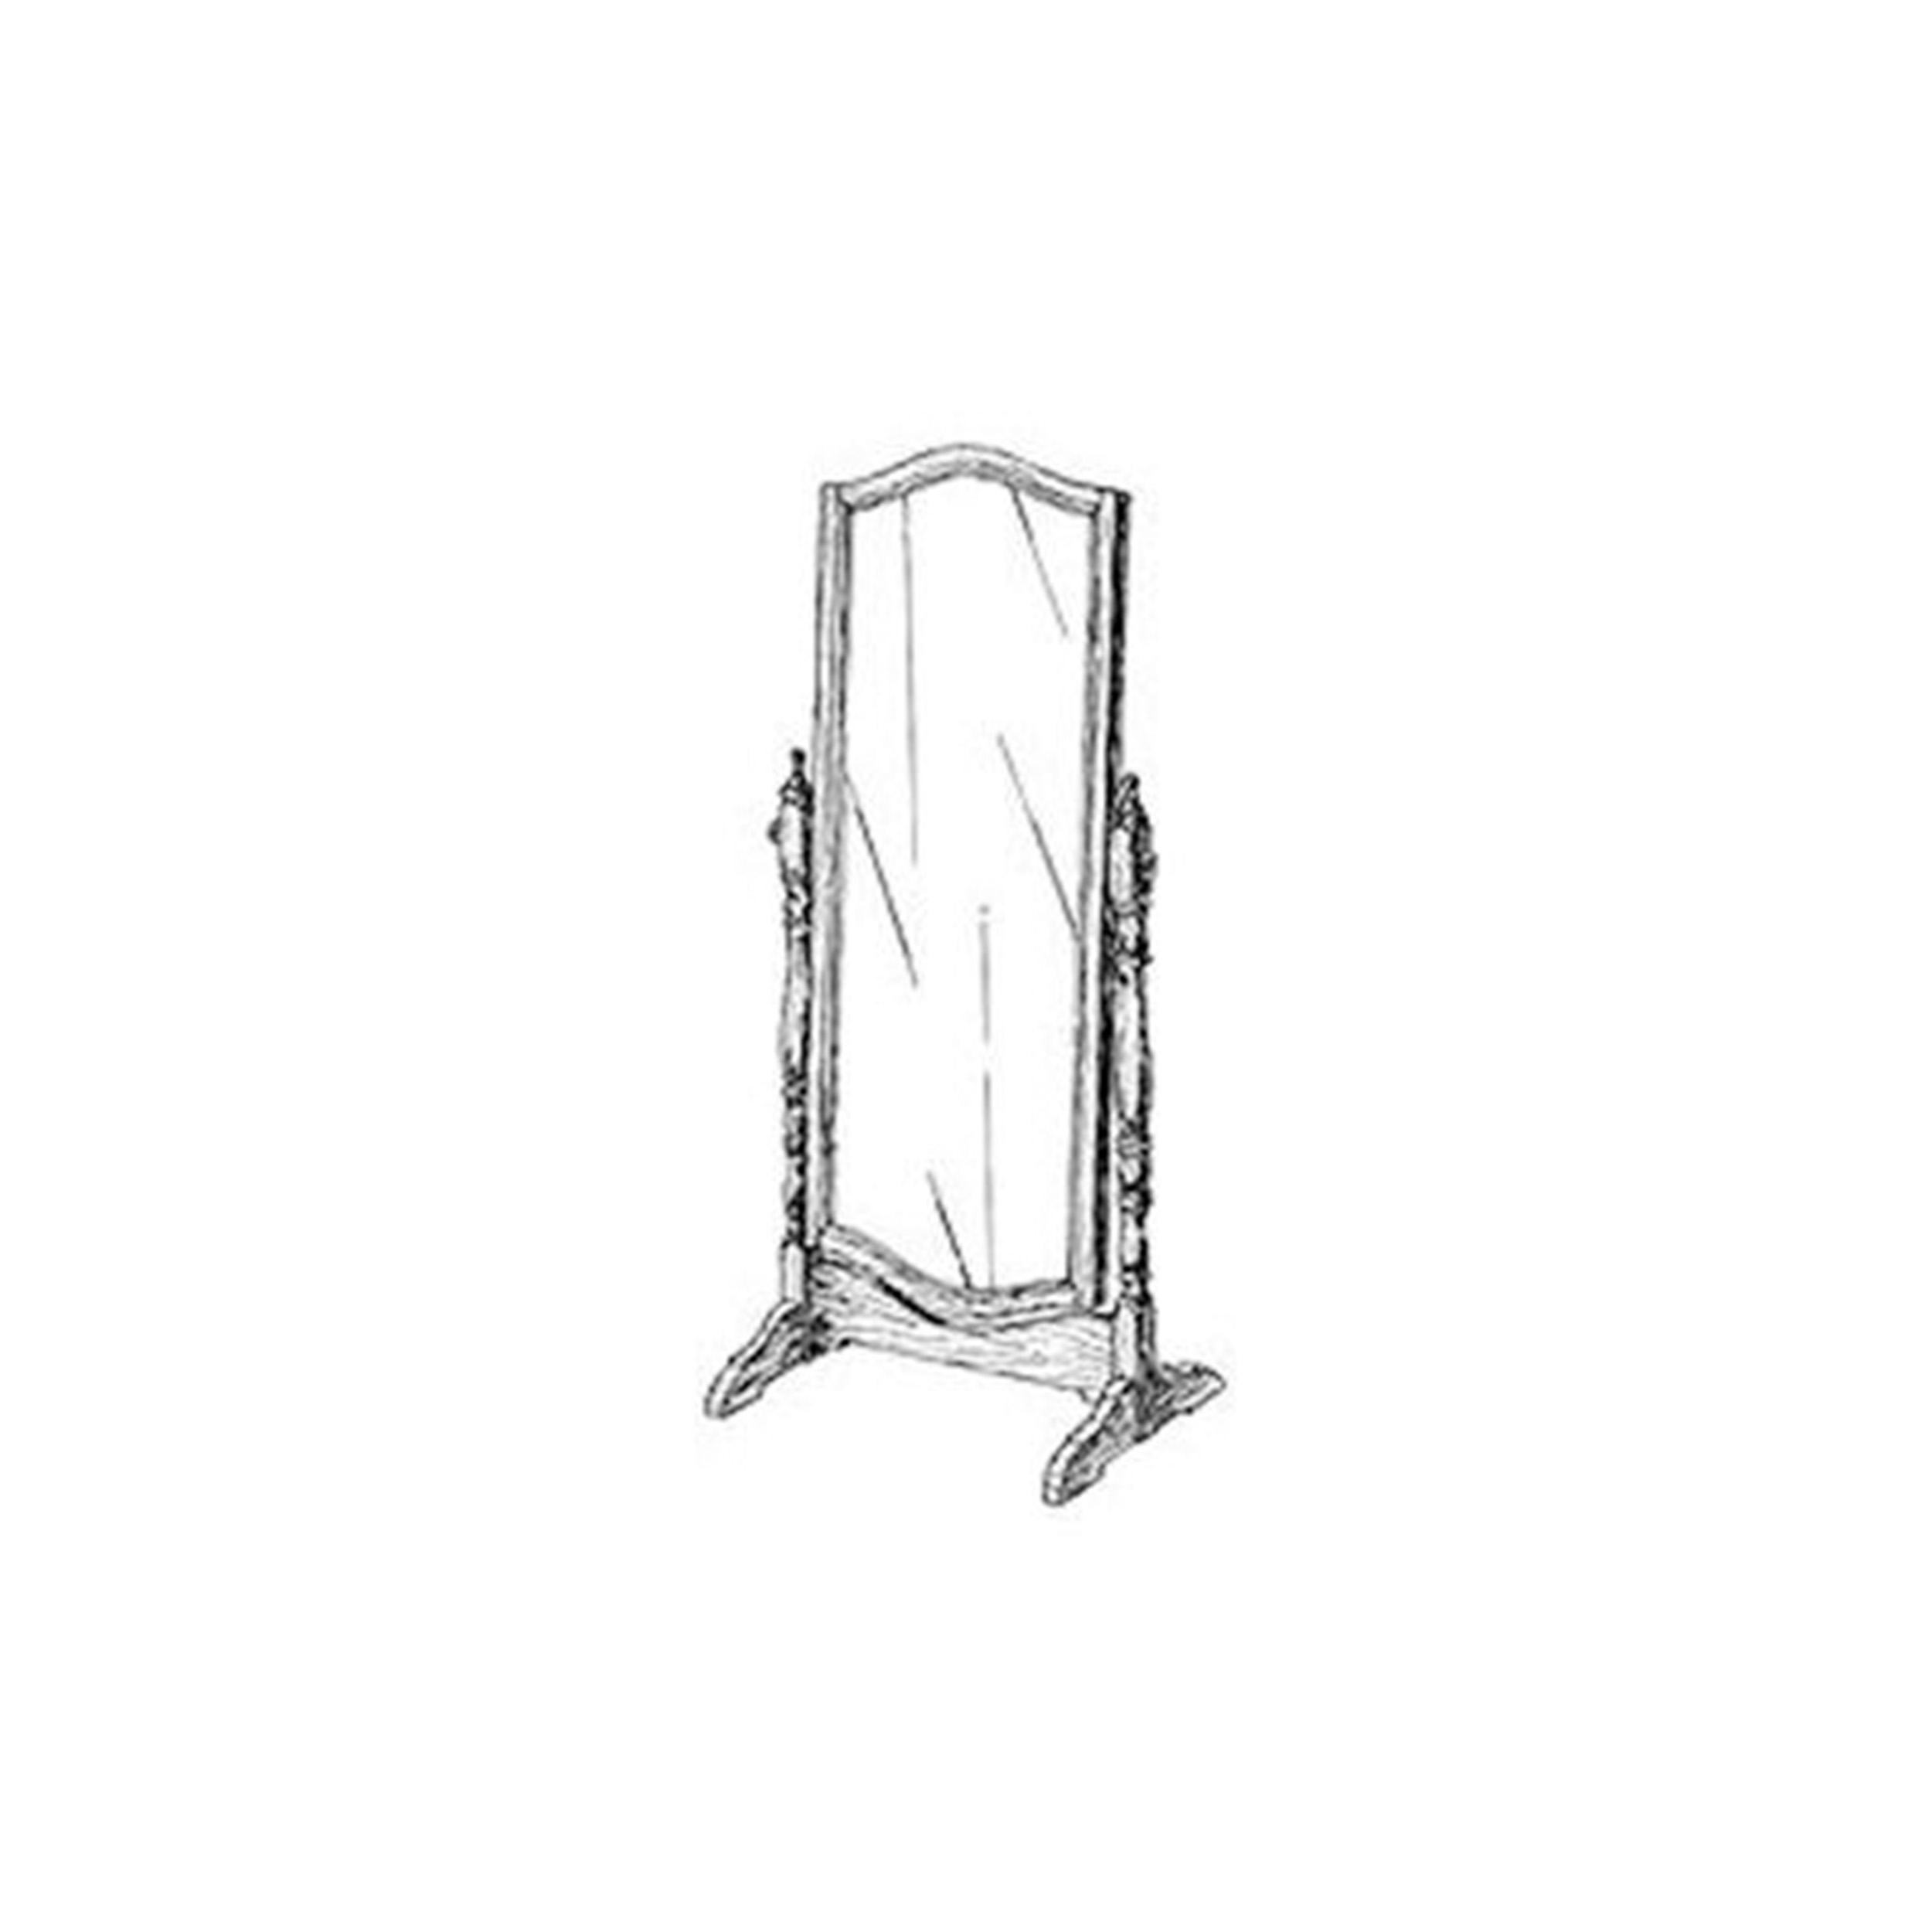 Woodworking Project Paper Plan to Build Cheval Mirror